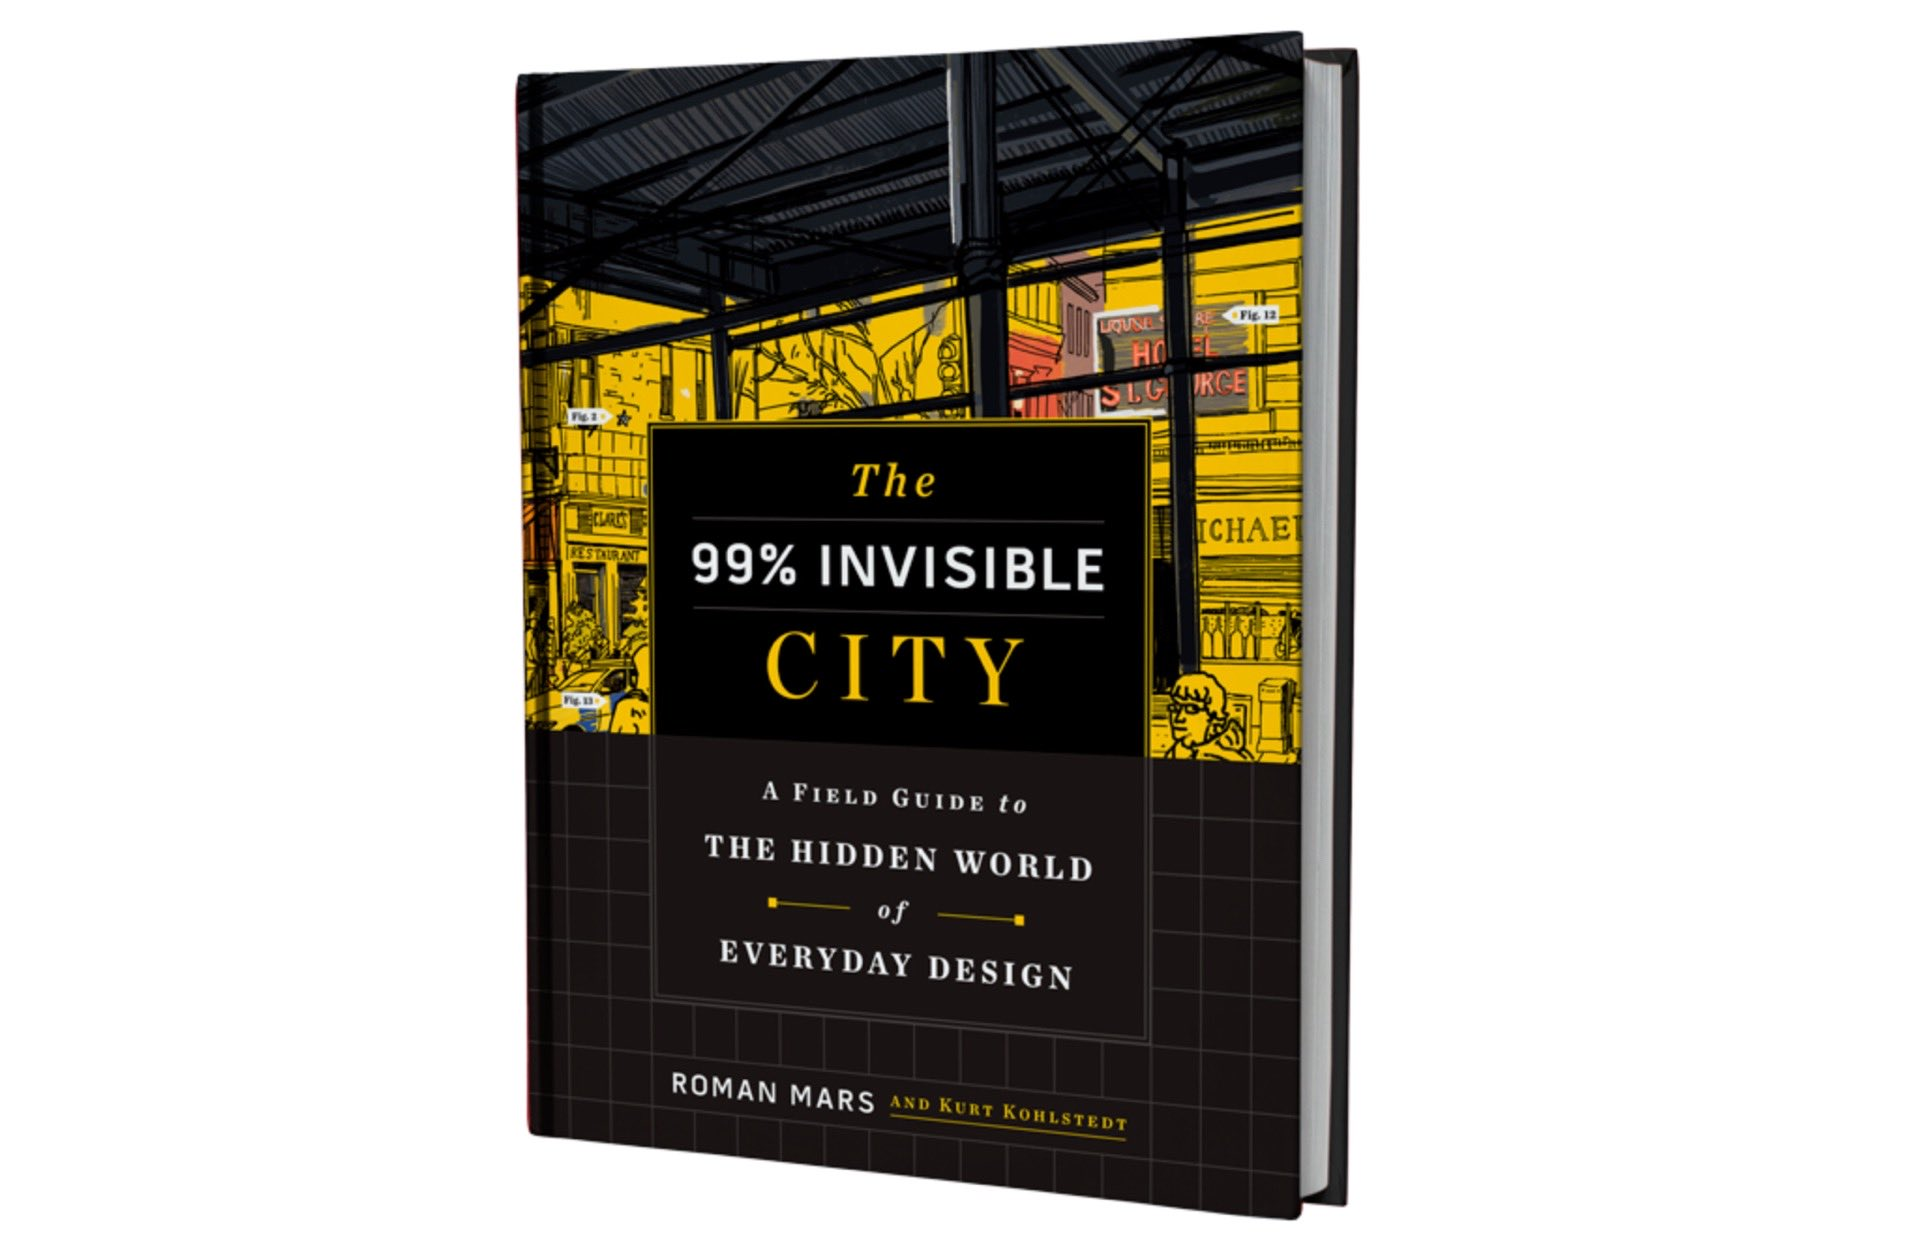 The 99% Invisible City by Roman Mars and Kurt Kohlstedt. ($22 hardcover)